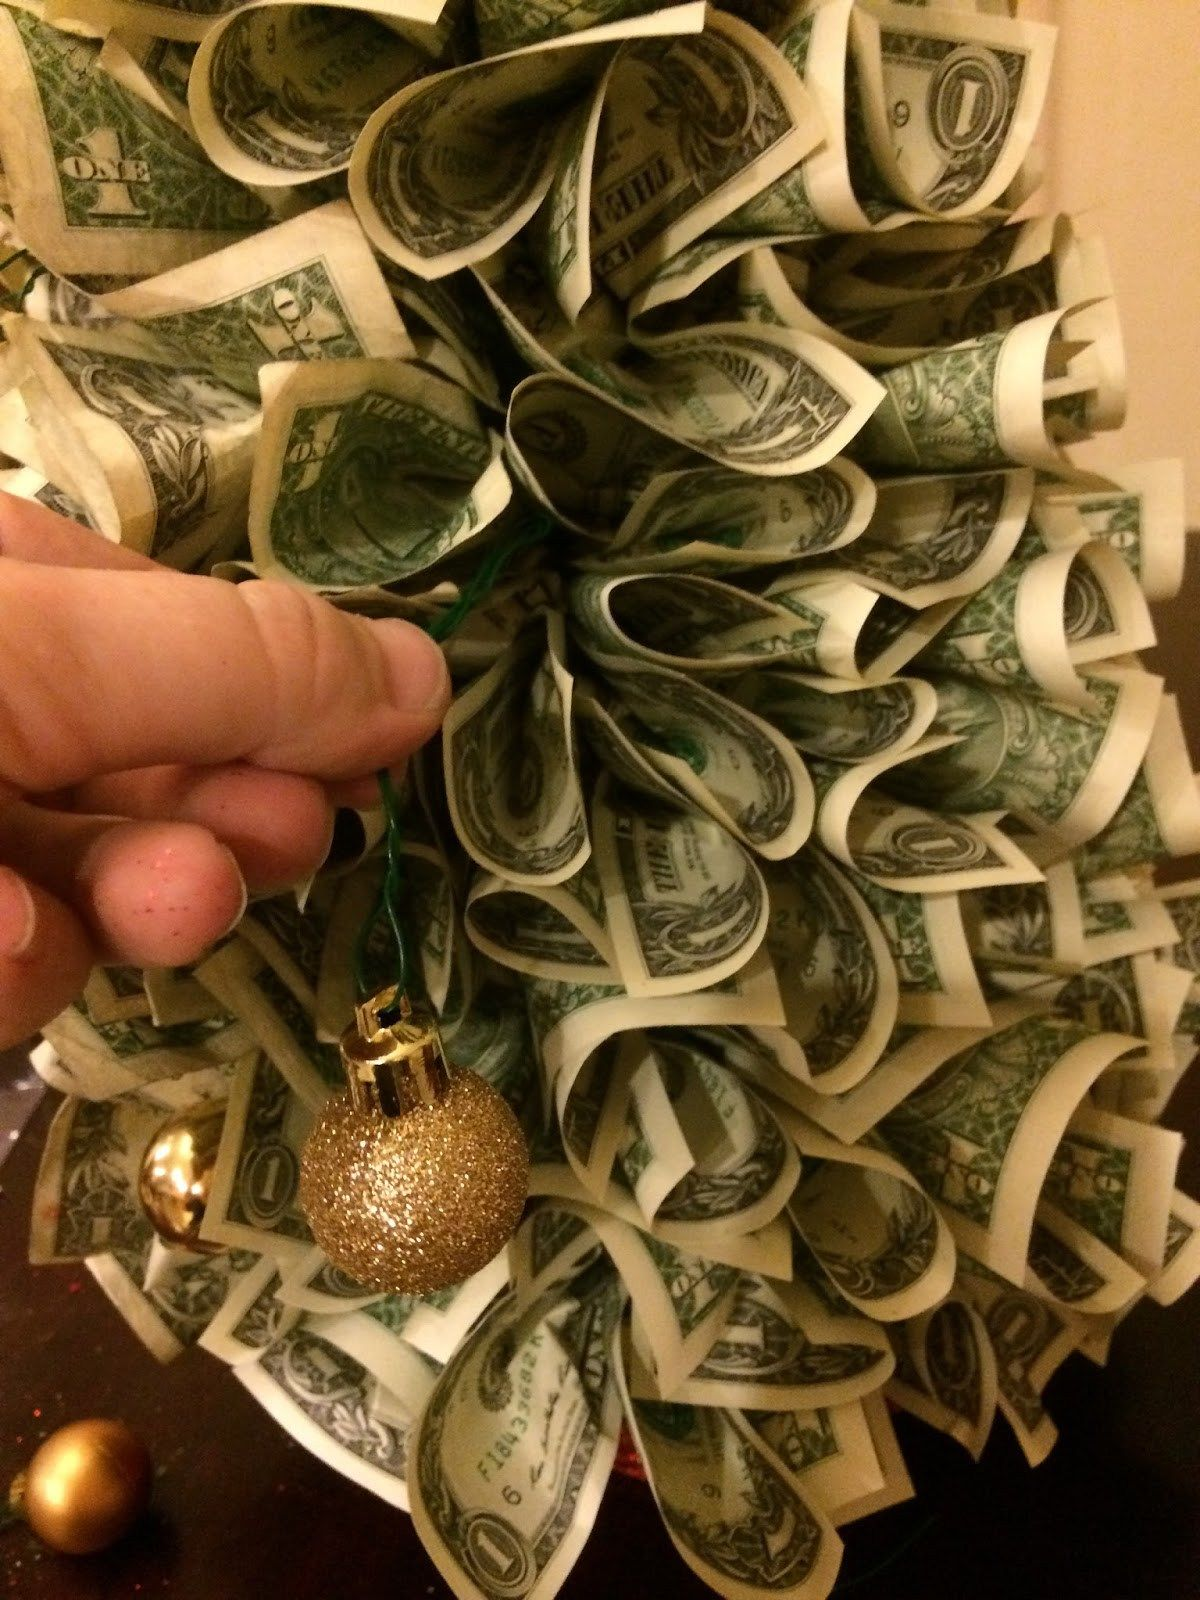 Diy Money Christmas Tree, Creative Cash Gift Tutorial